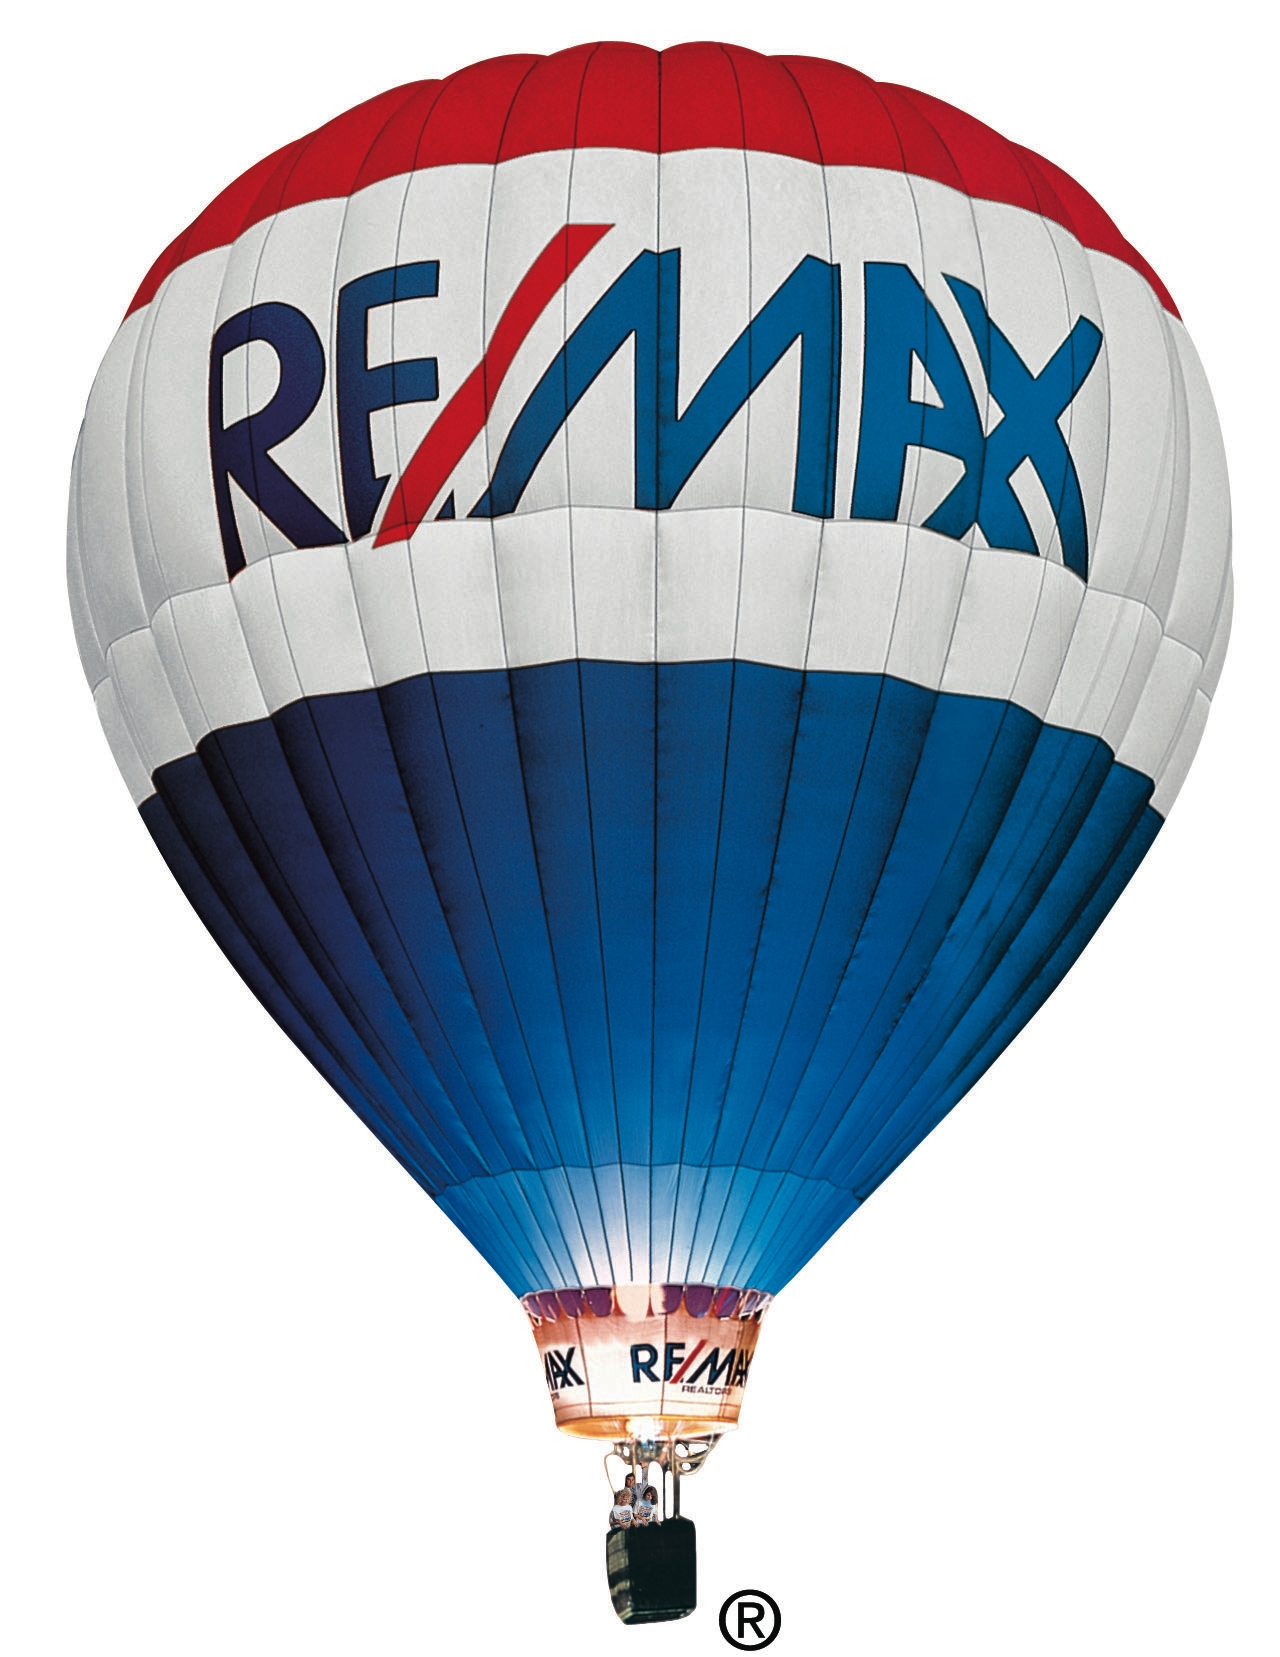 RE/MAX  LAKESIDE- YOON KIM